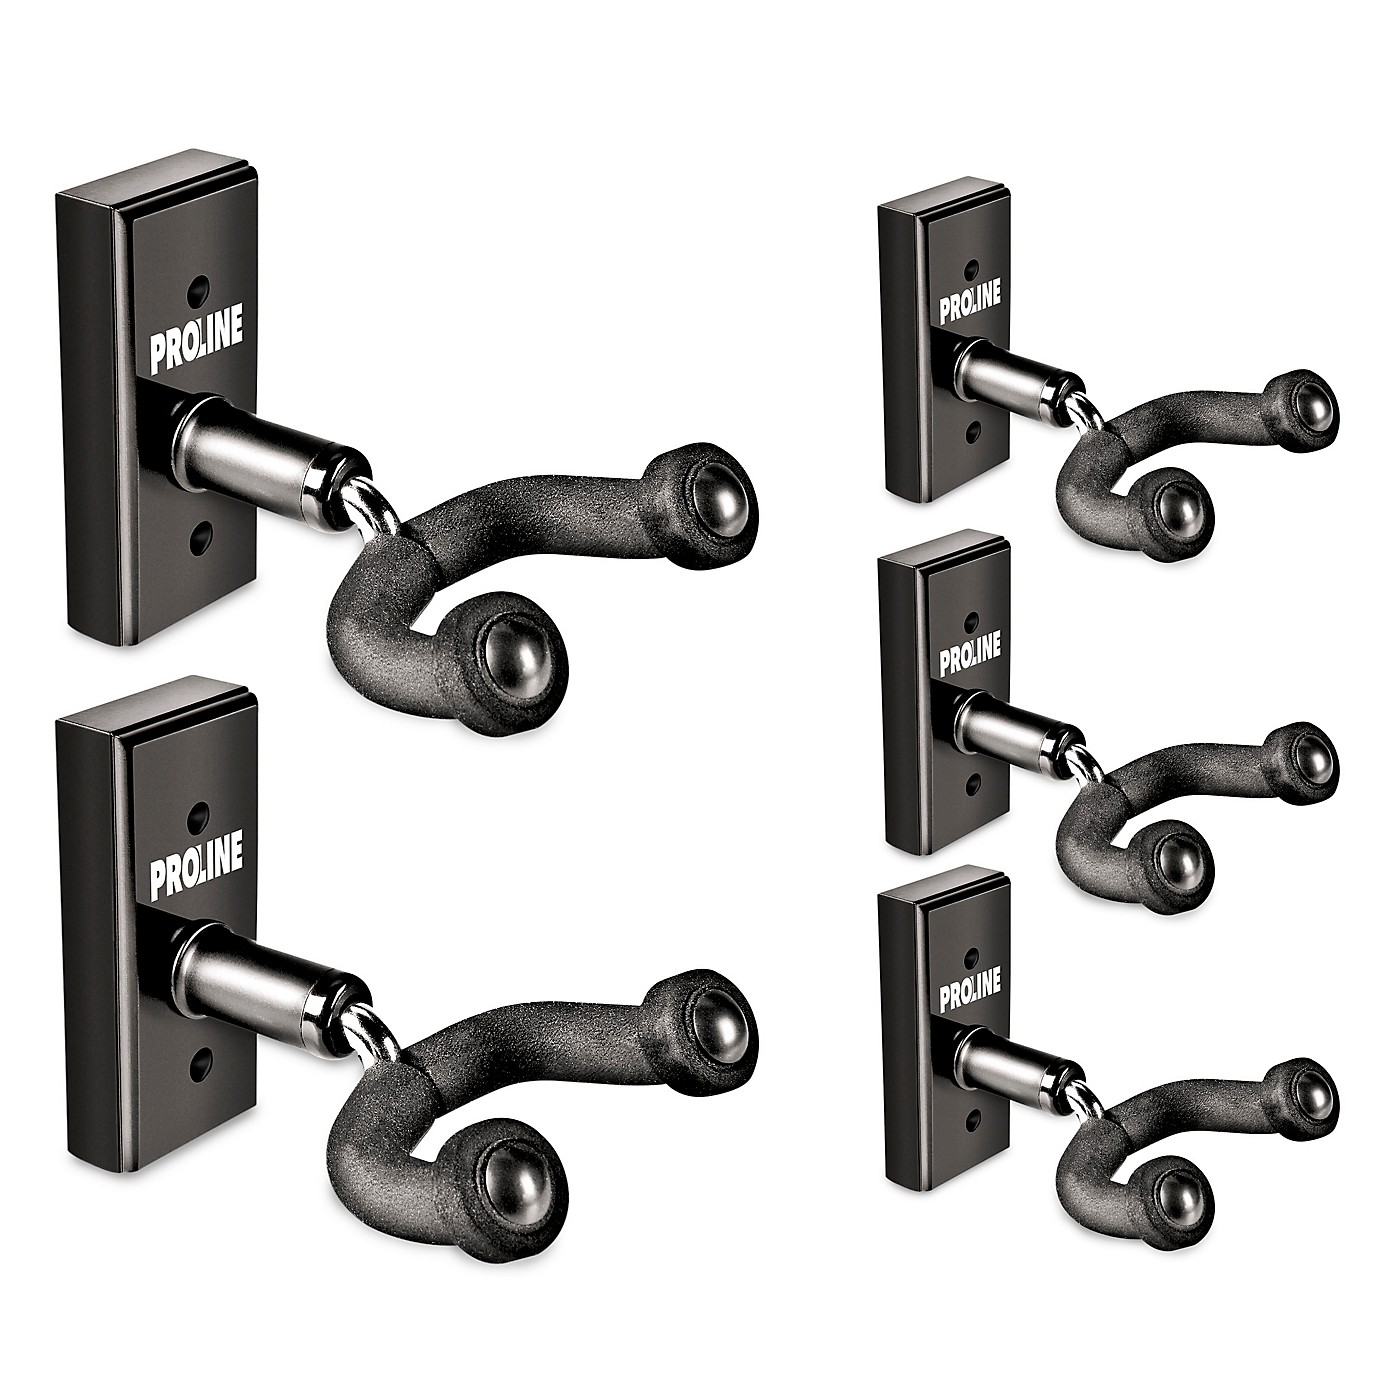 Proline GH1 Guitar Wall Hanger 5-Pack (Black Finish) thumbnail